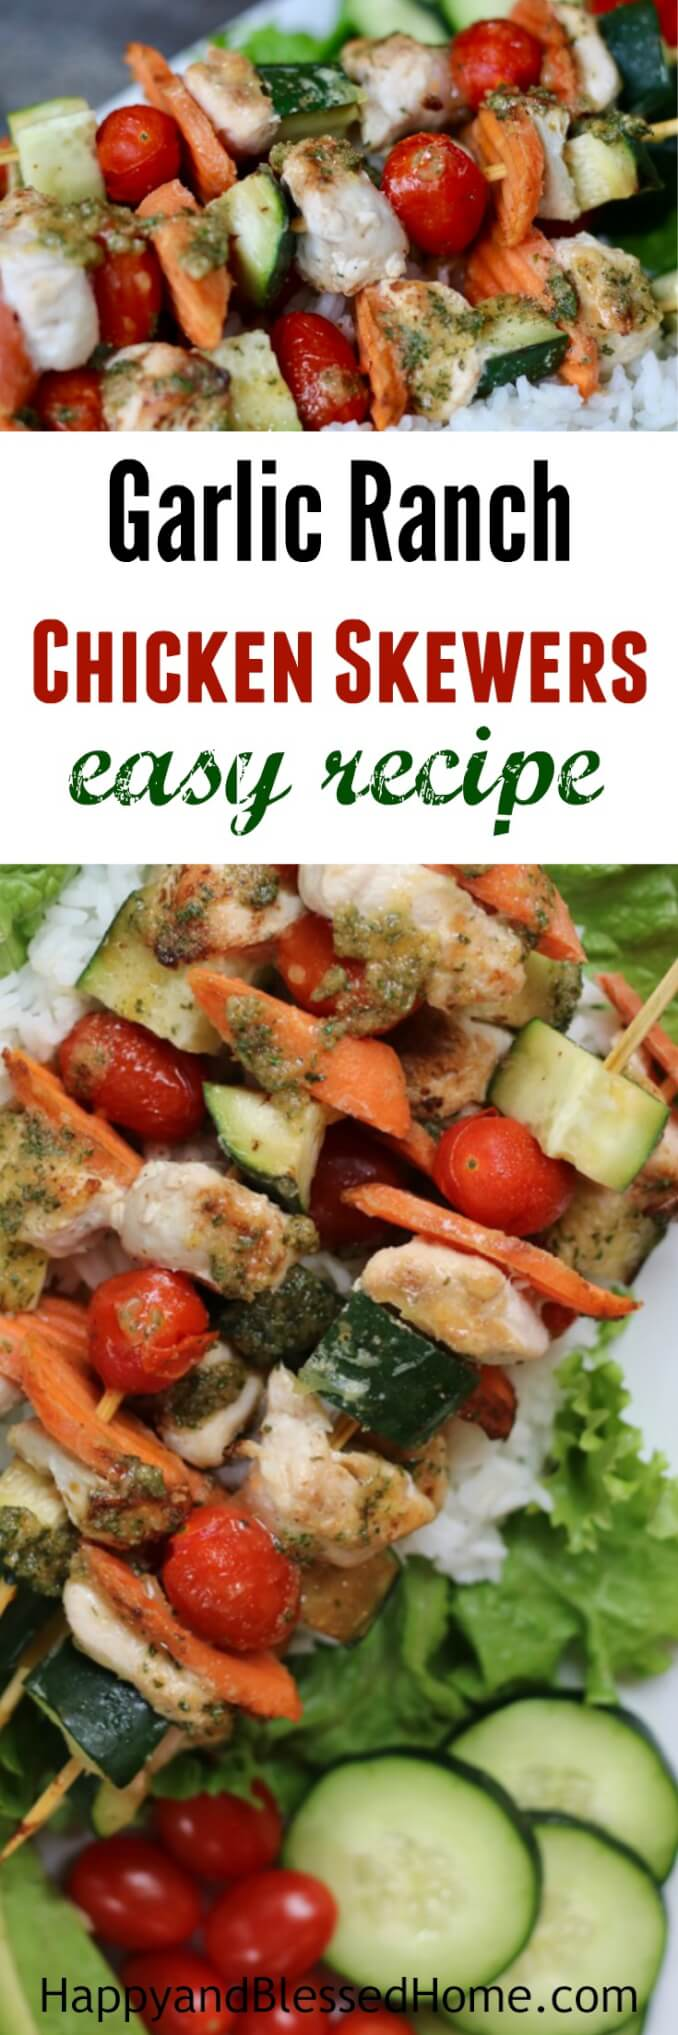 Do you find it challenging to get your kids to eat veggies? Not anymore! Here I'm sharing my Easy Recipe: Kid Friendly Garlic Ranch Chicken Skewers.